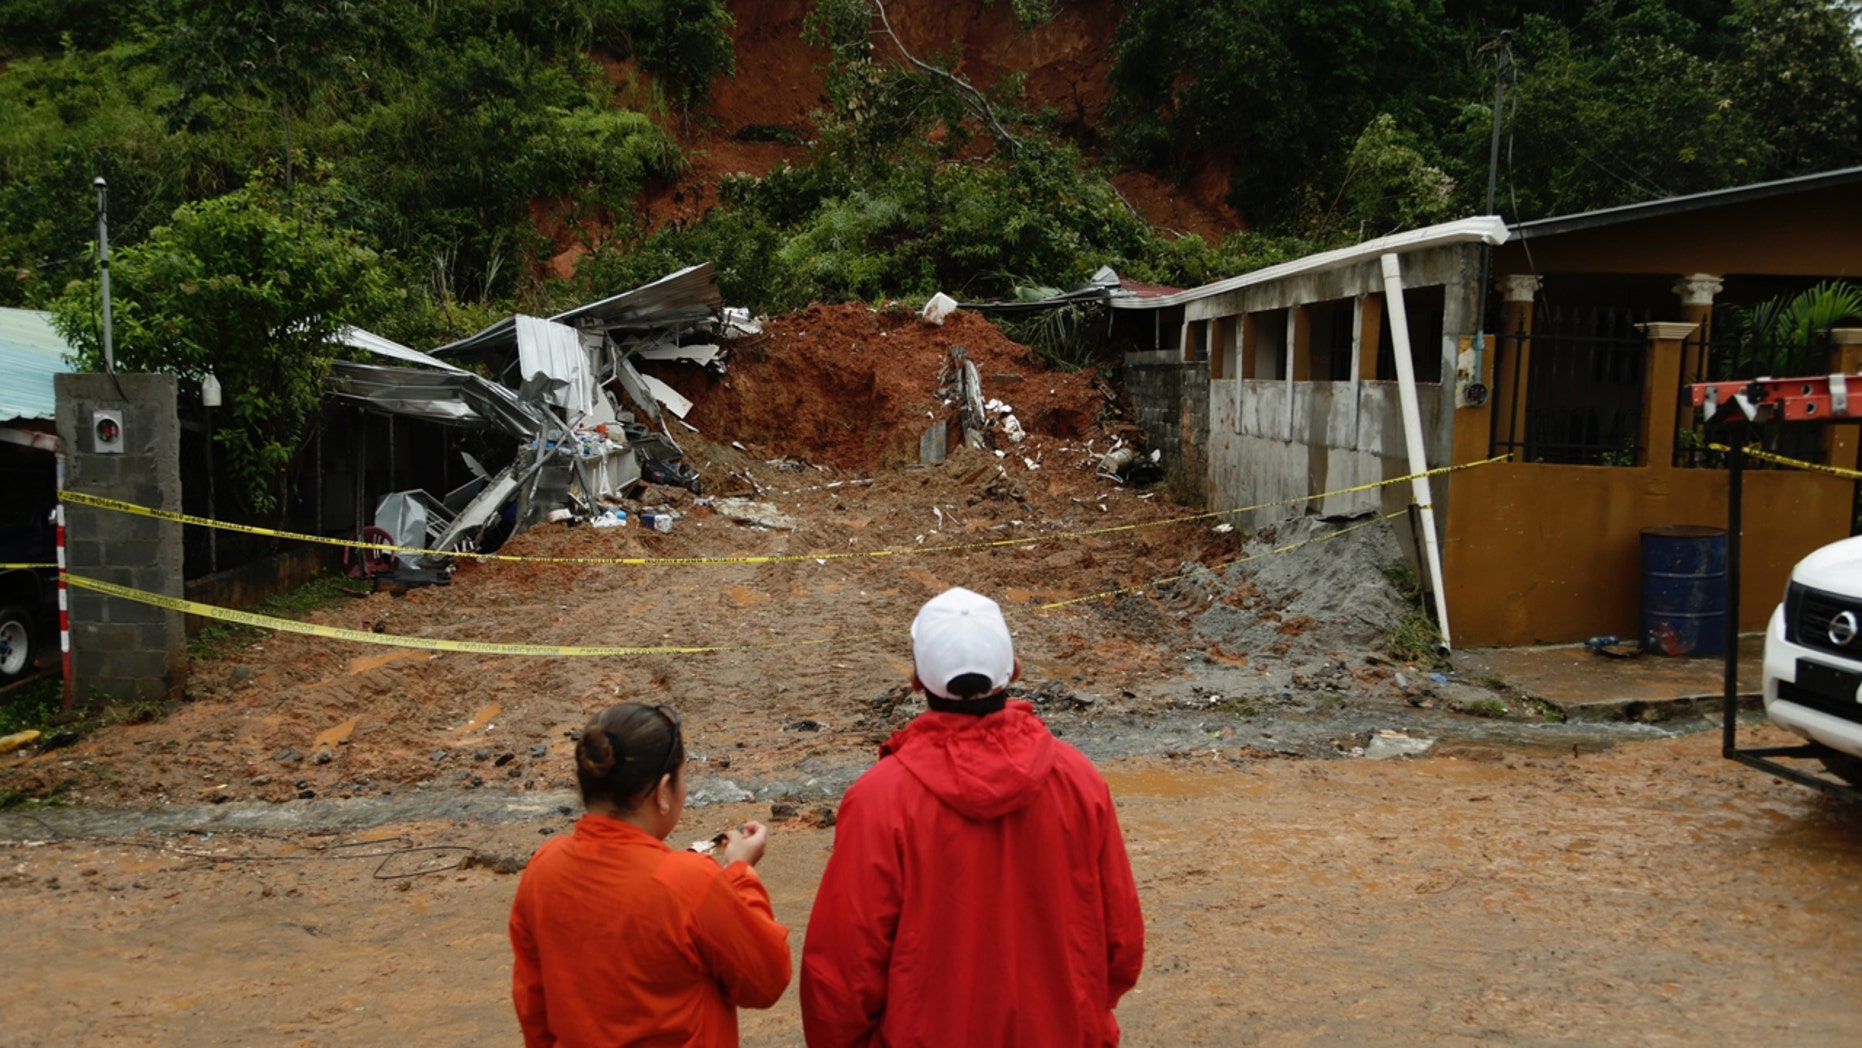 Civil Defense workers look the area where a couple was killed after their home was destroyed by a mudslide in Arraijan on the outskirts of Panama City, Tuesday, Nov. 22, 2016.